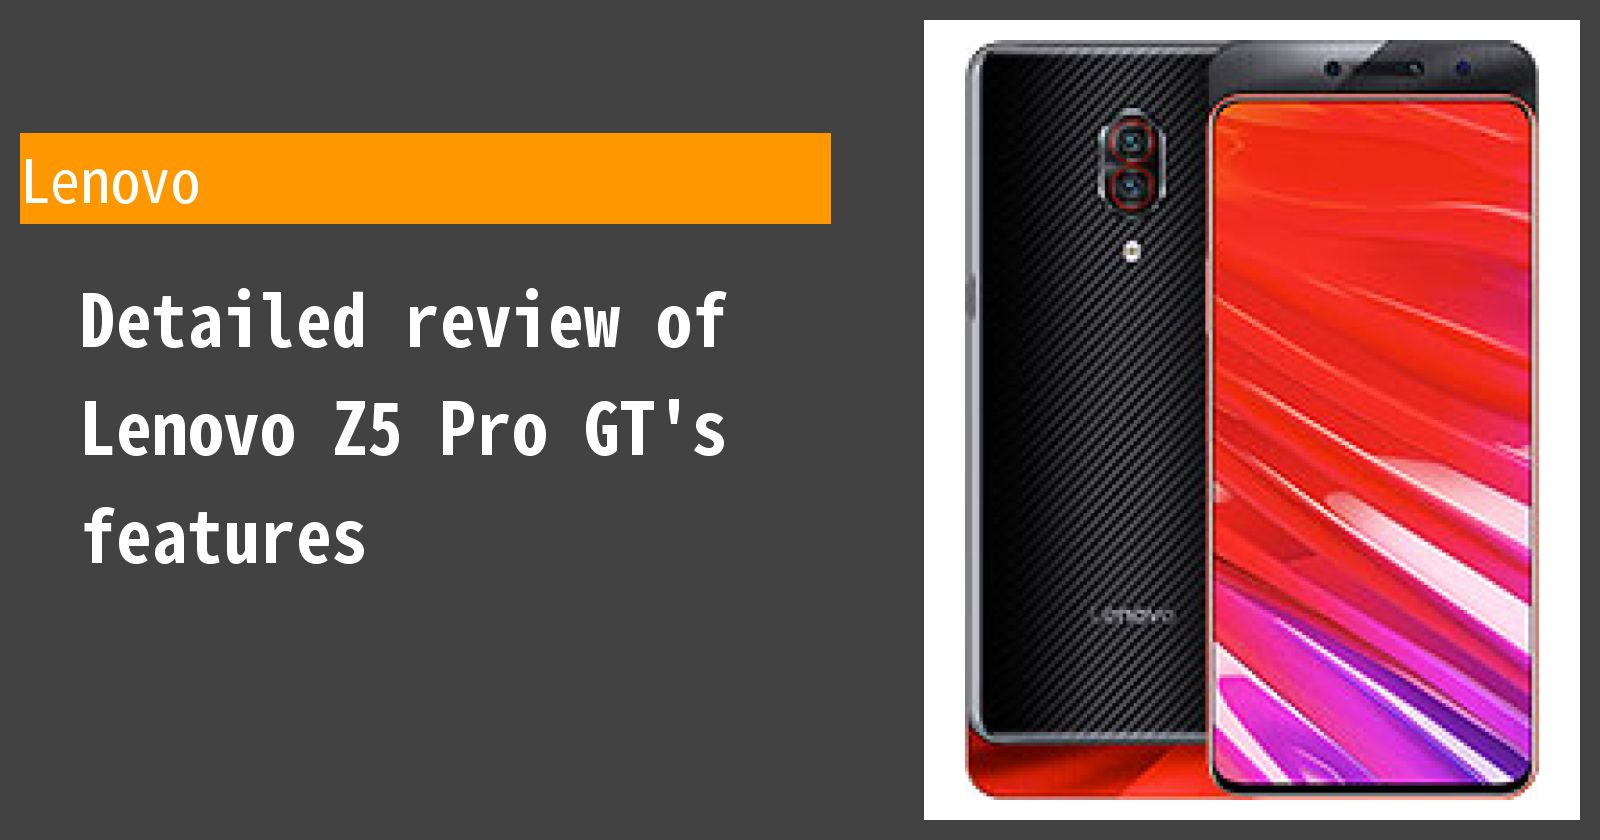 Detailed review of Lenovo Z5 Pro GT's features